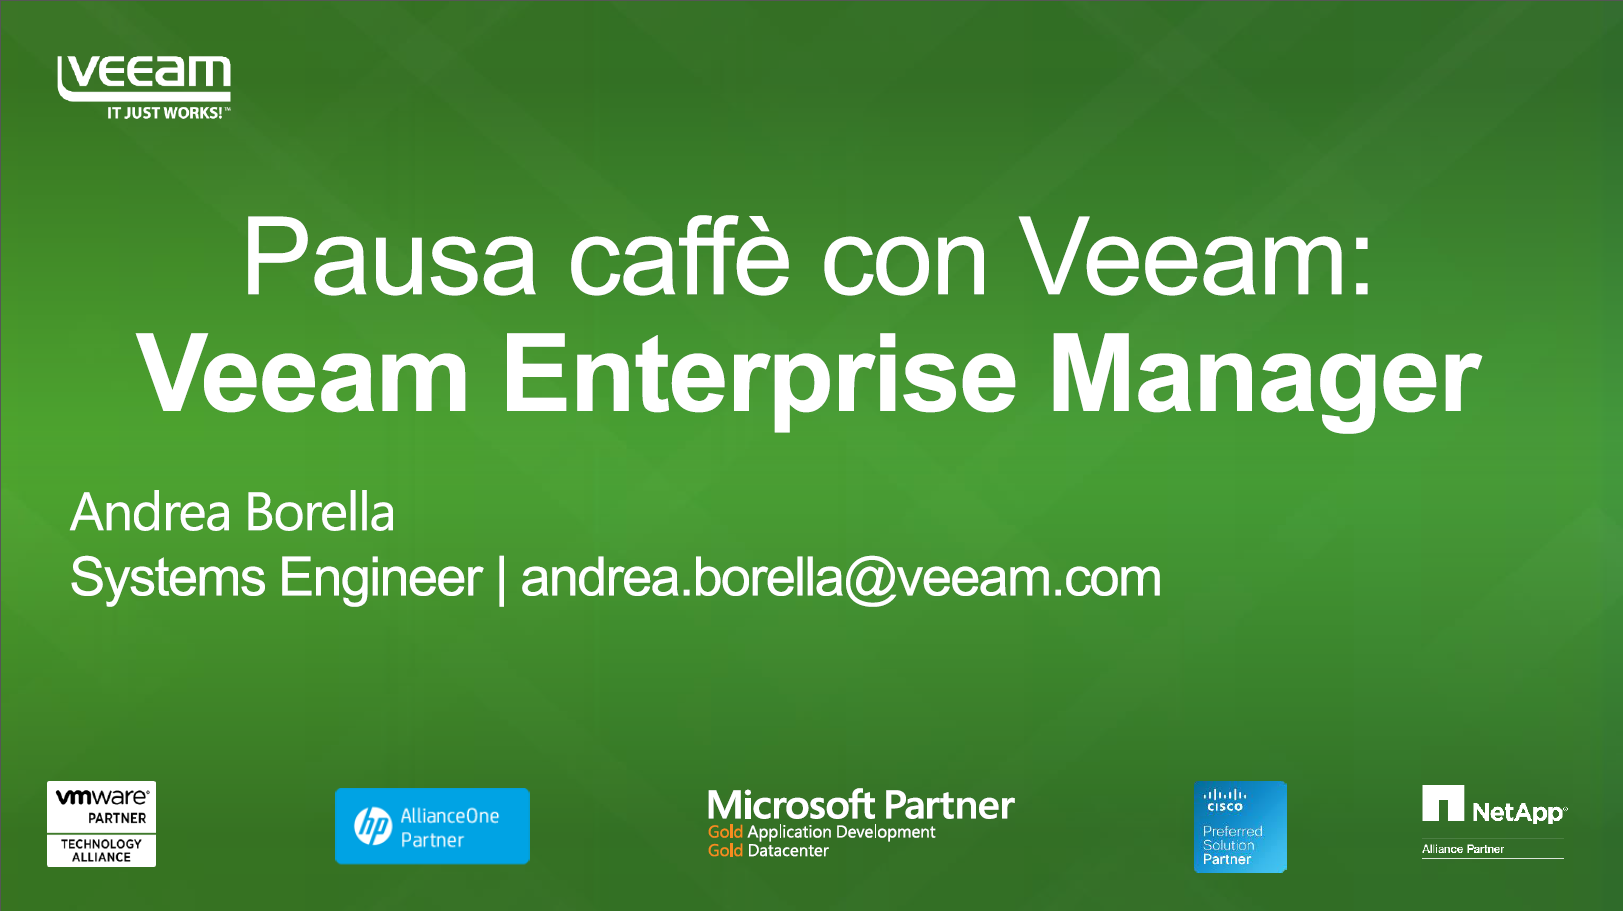 Pausa caffè con Veeam Veeam Enterprise Manager